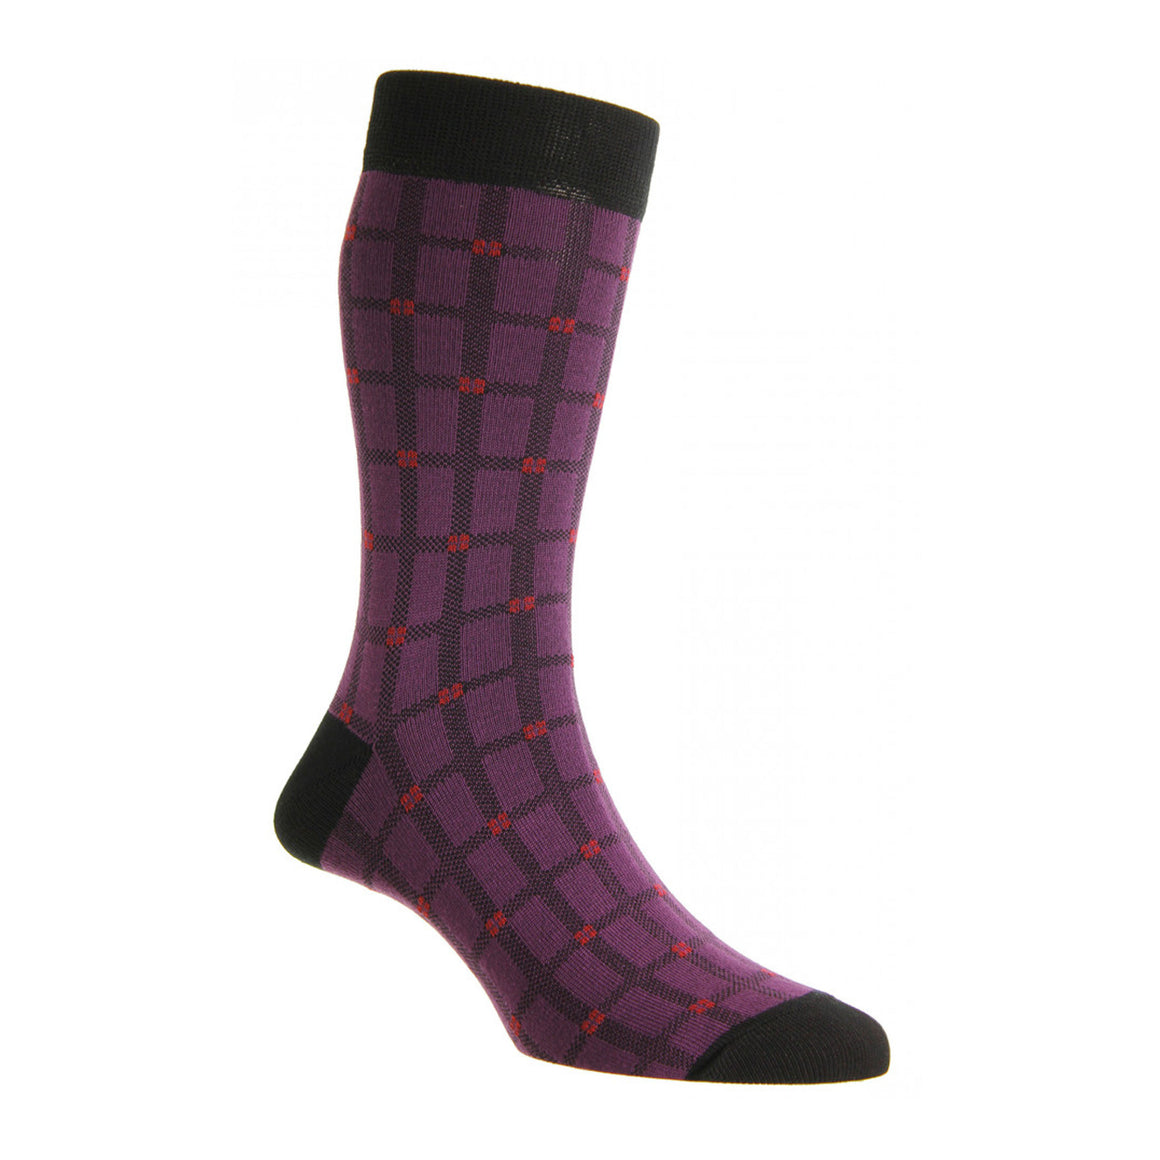 HJ653 Socks for Men in Purple